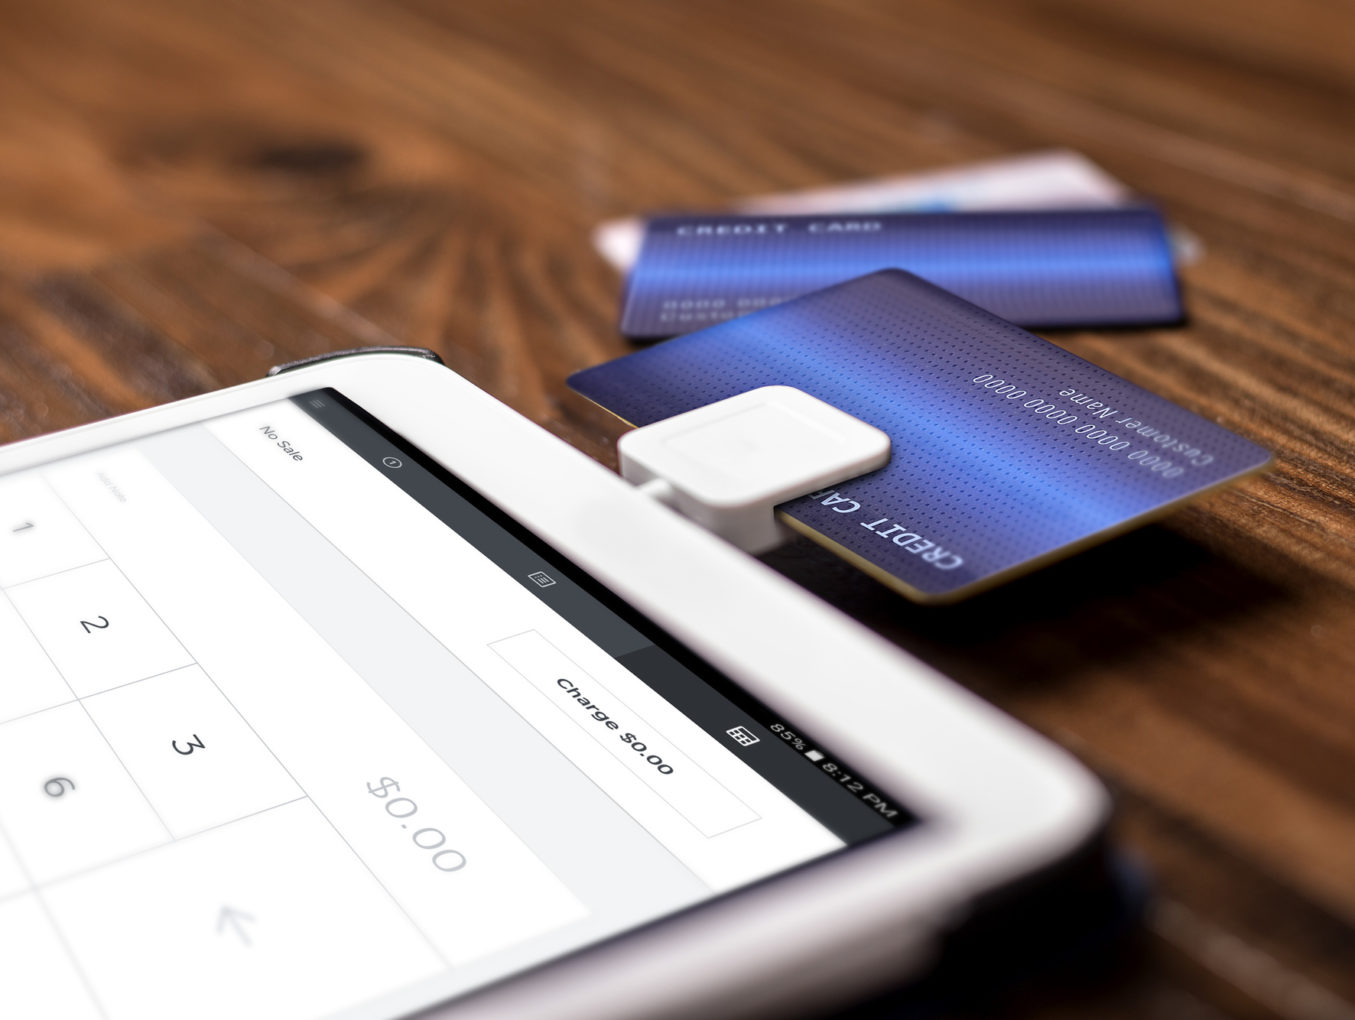 Business Credit Card Readers for Mobile Phones: Everything You Need to Know